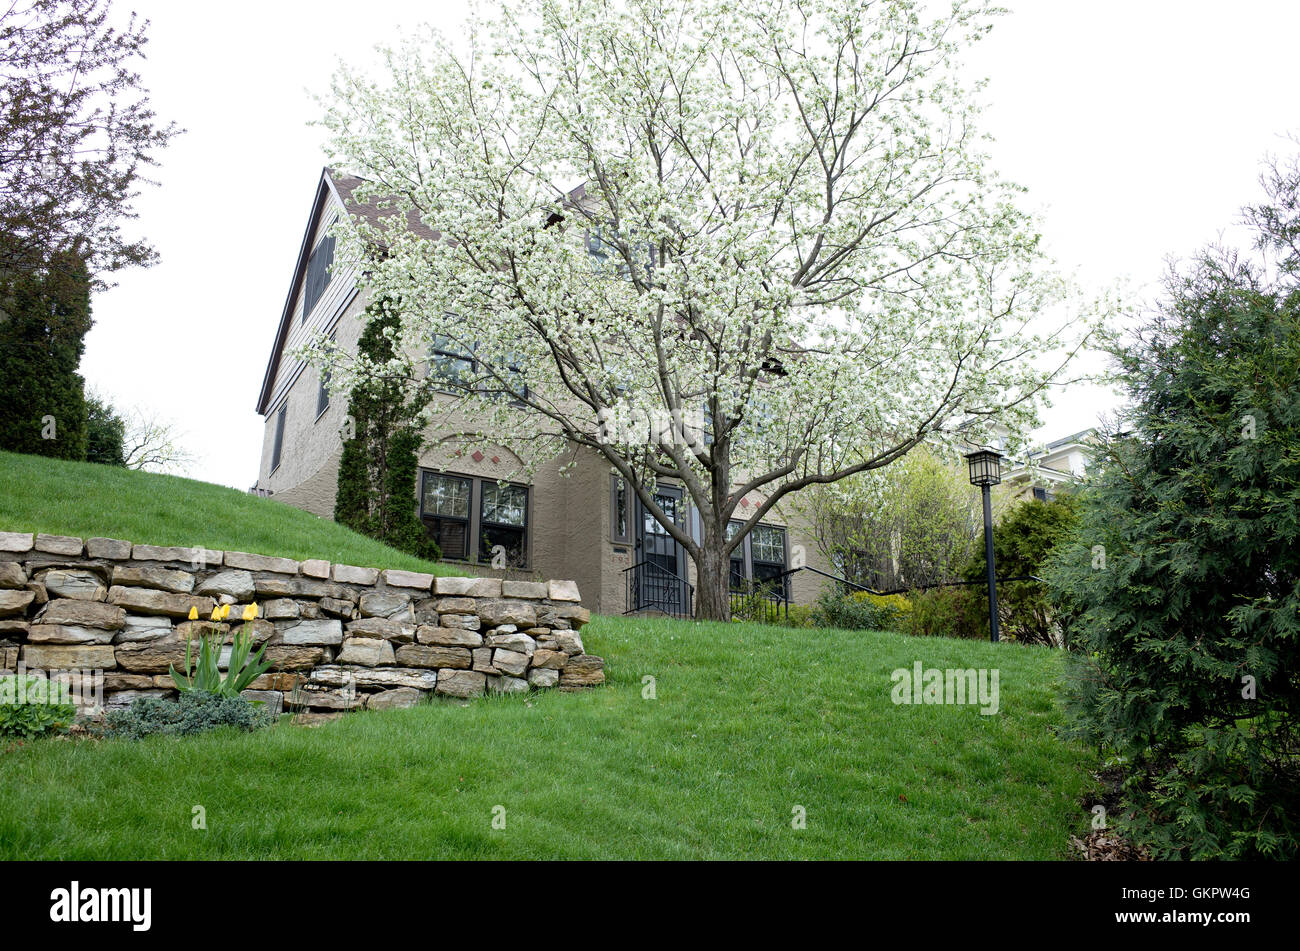 Landscaped yard of home with a blossoming fruit tree in front. St Paul Minnesota MN USA - Stock Image